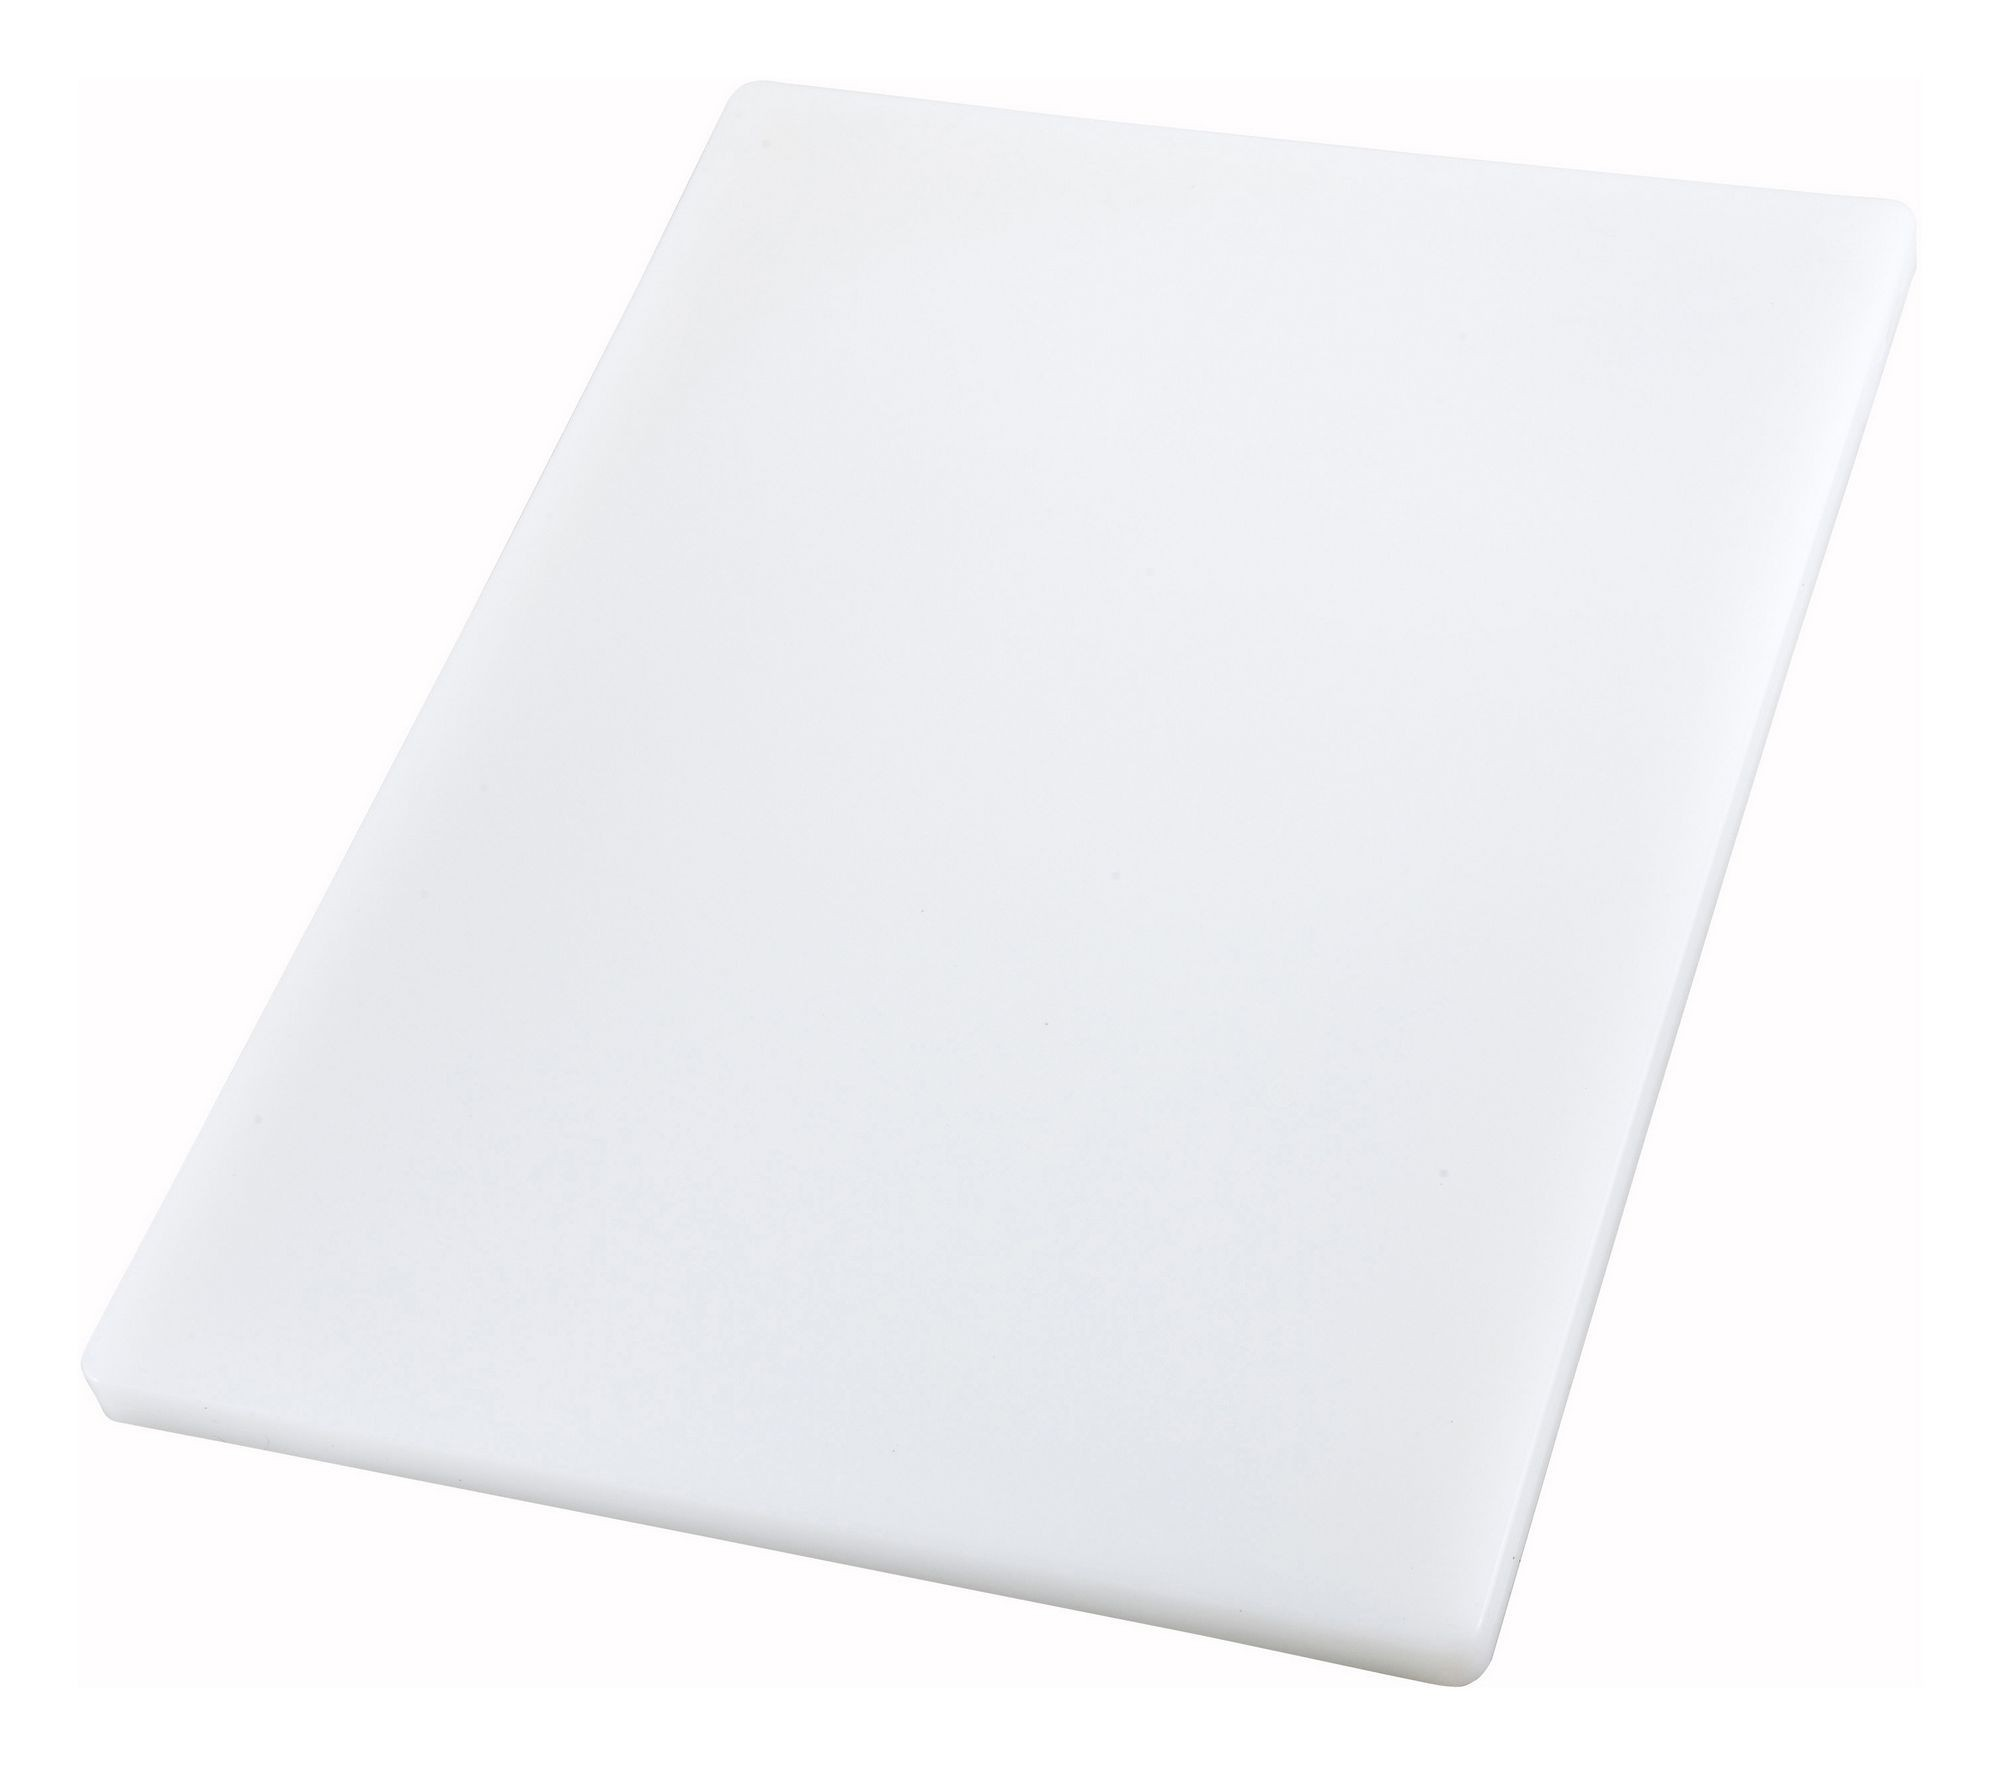 Thick White NSF Cutting Board - 12 X 18 X 1